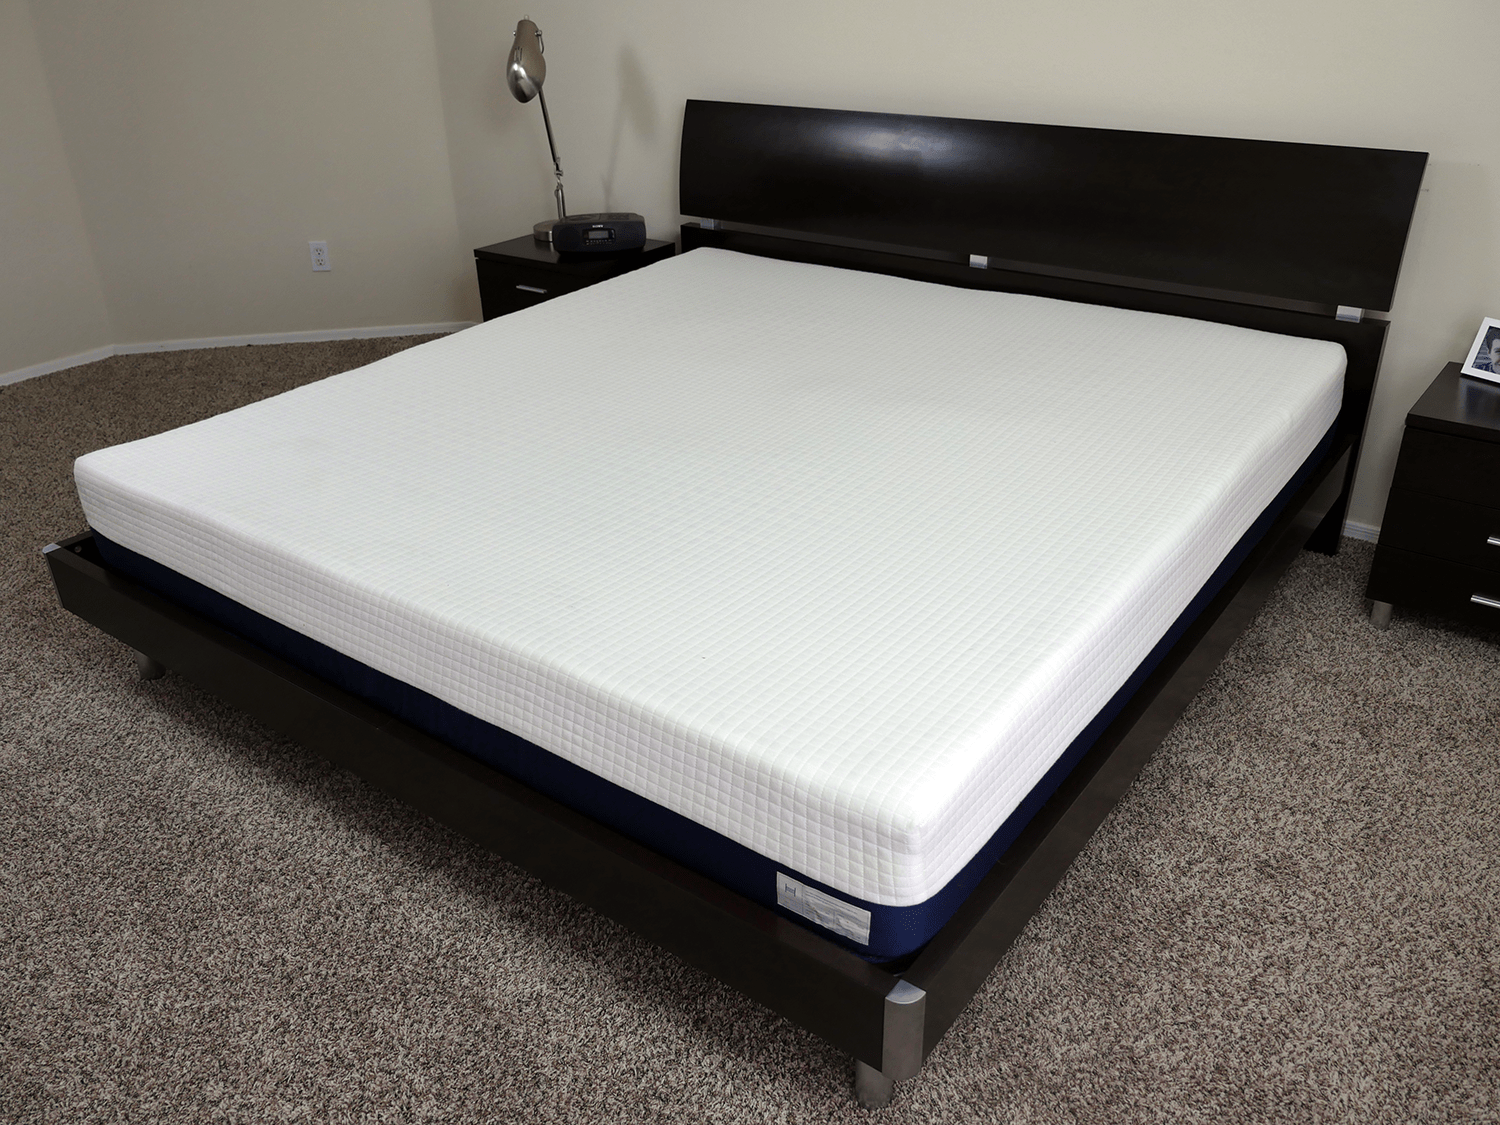 Helix mattress, angled view